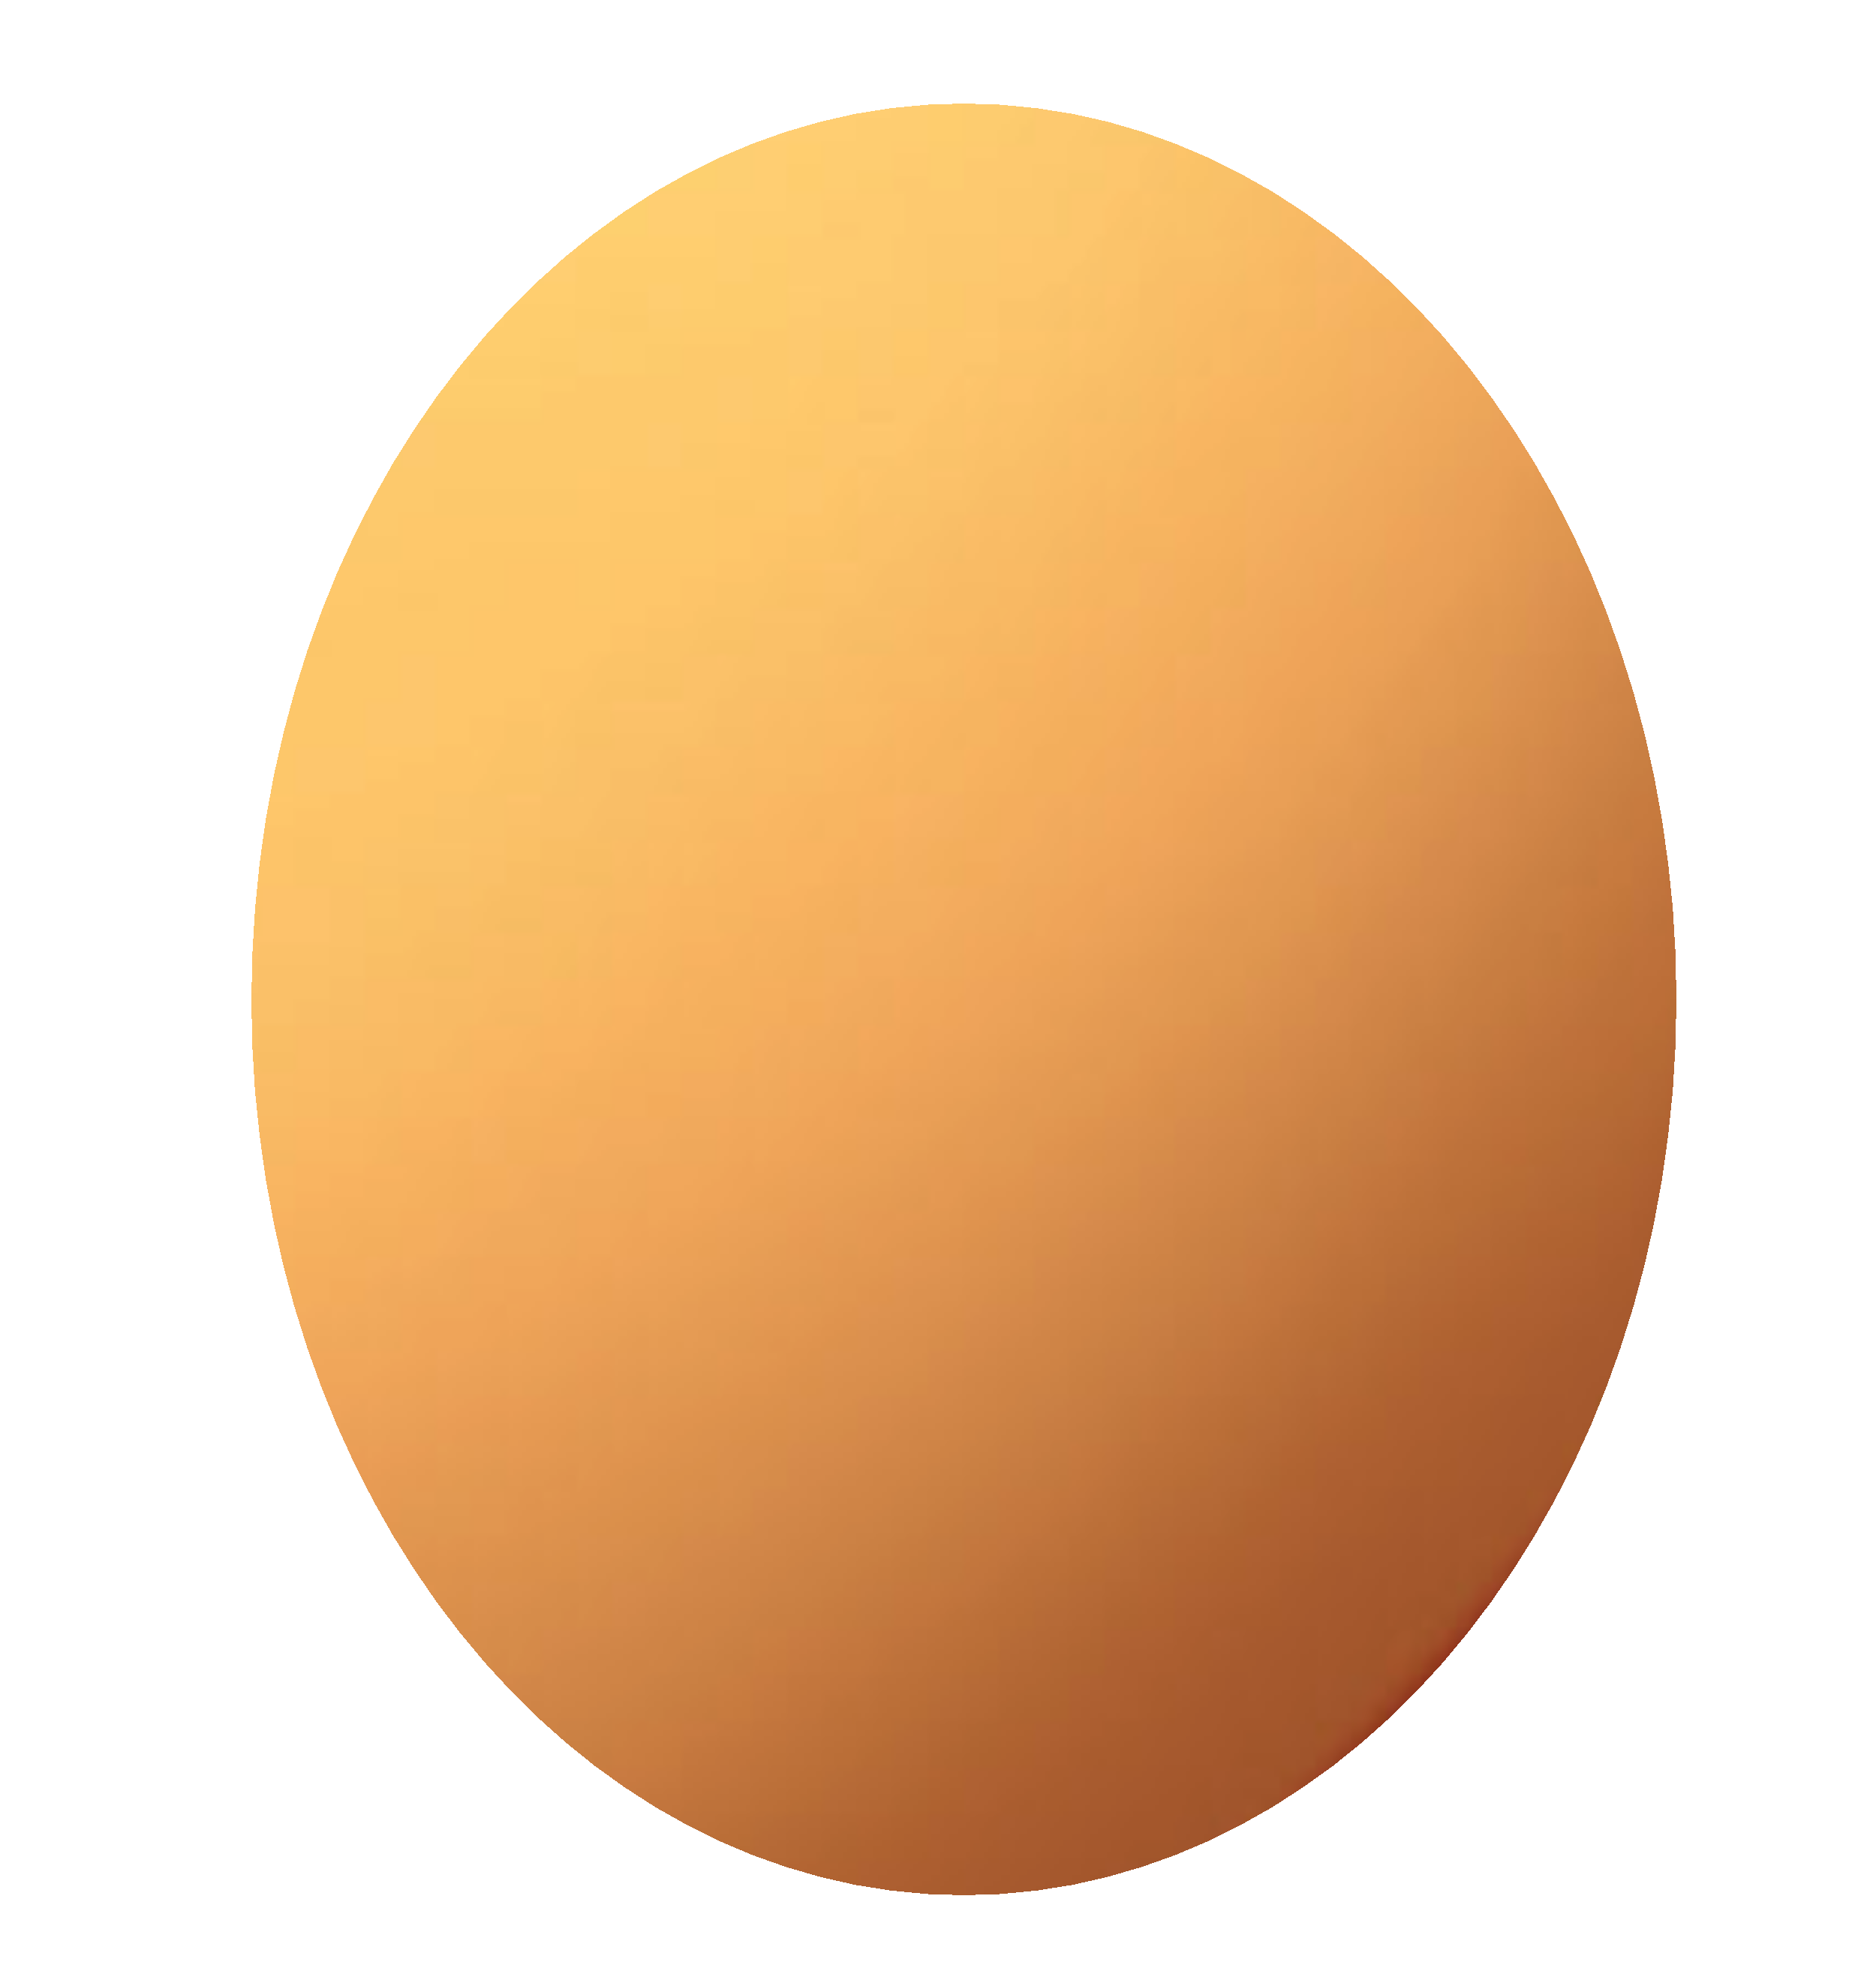 Eggs clipart transparent background. Egg four isolated stock